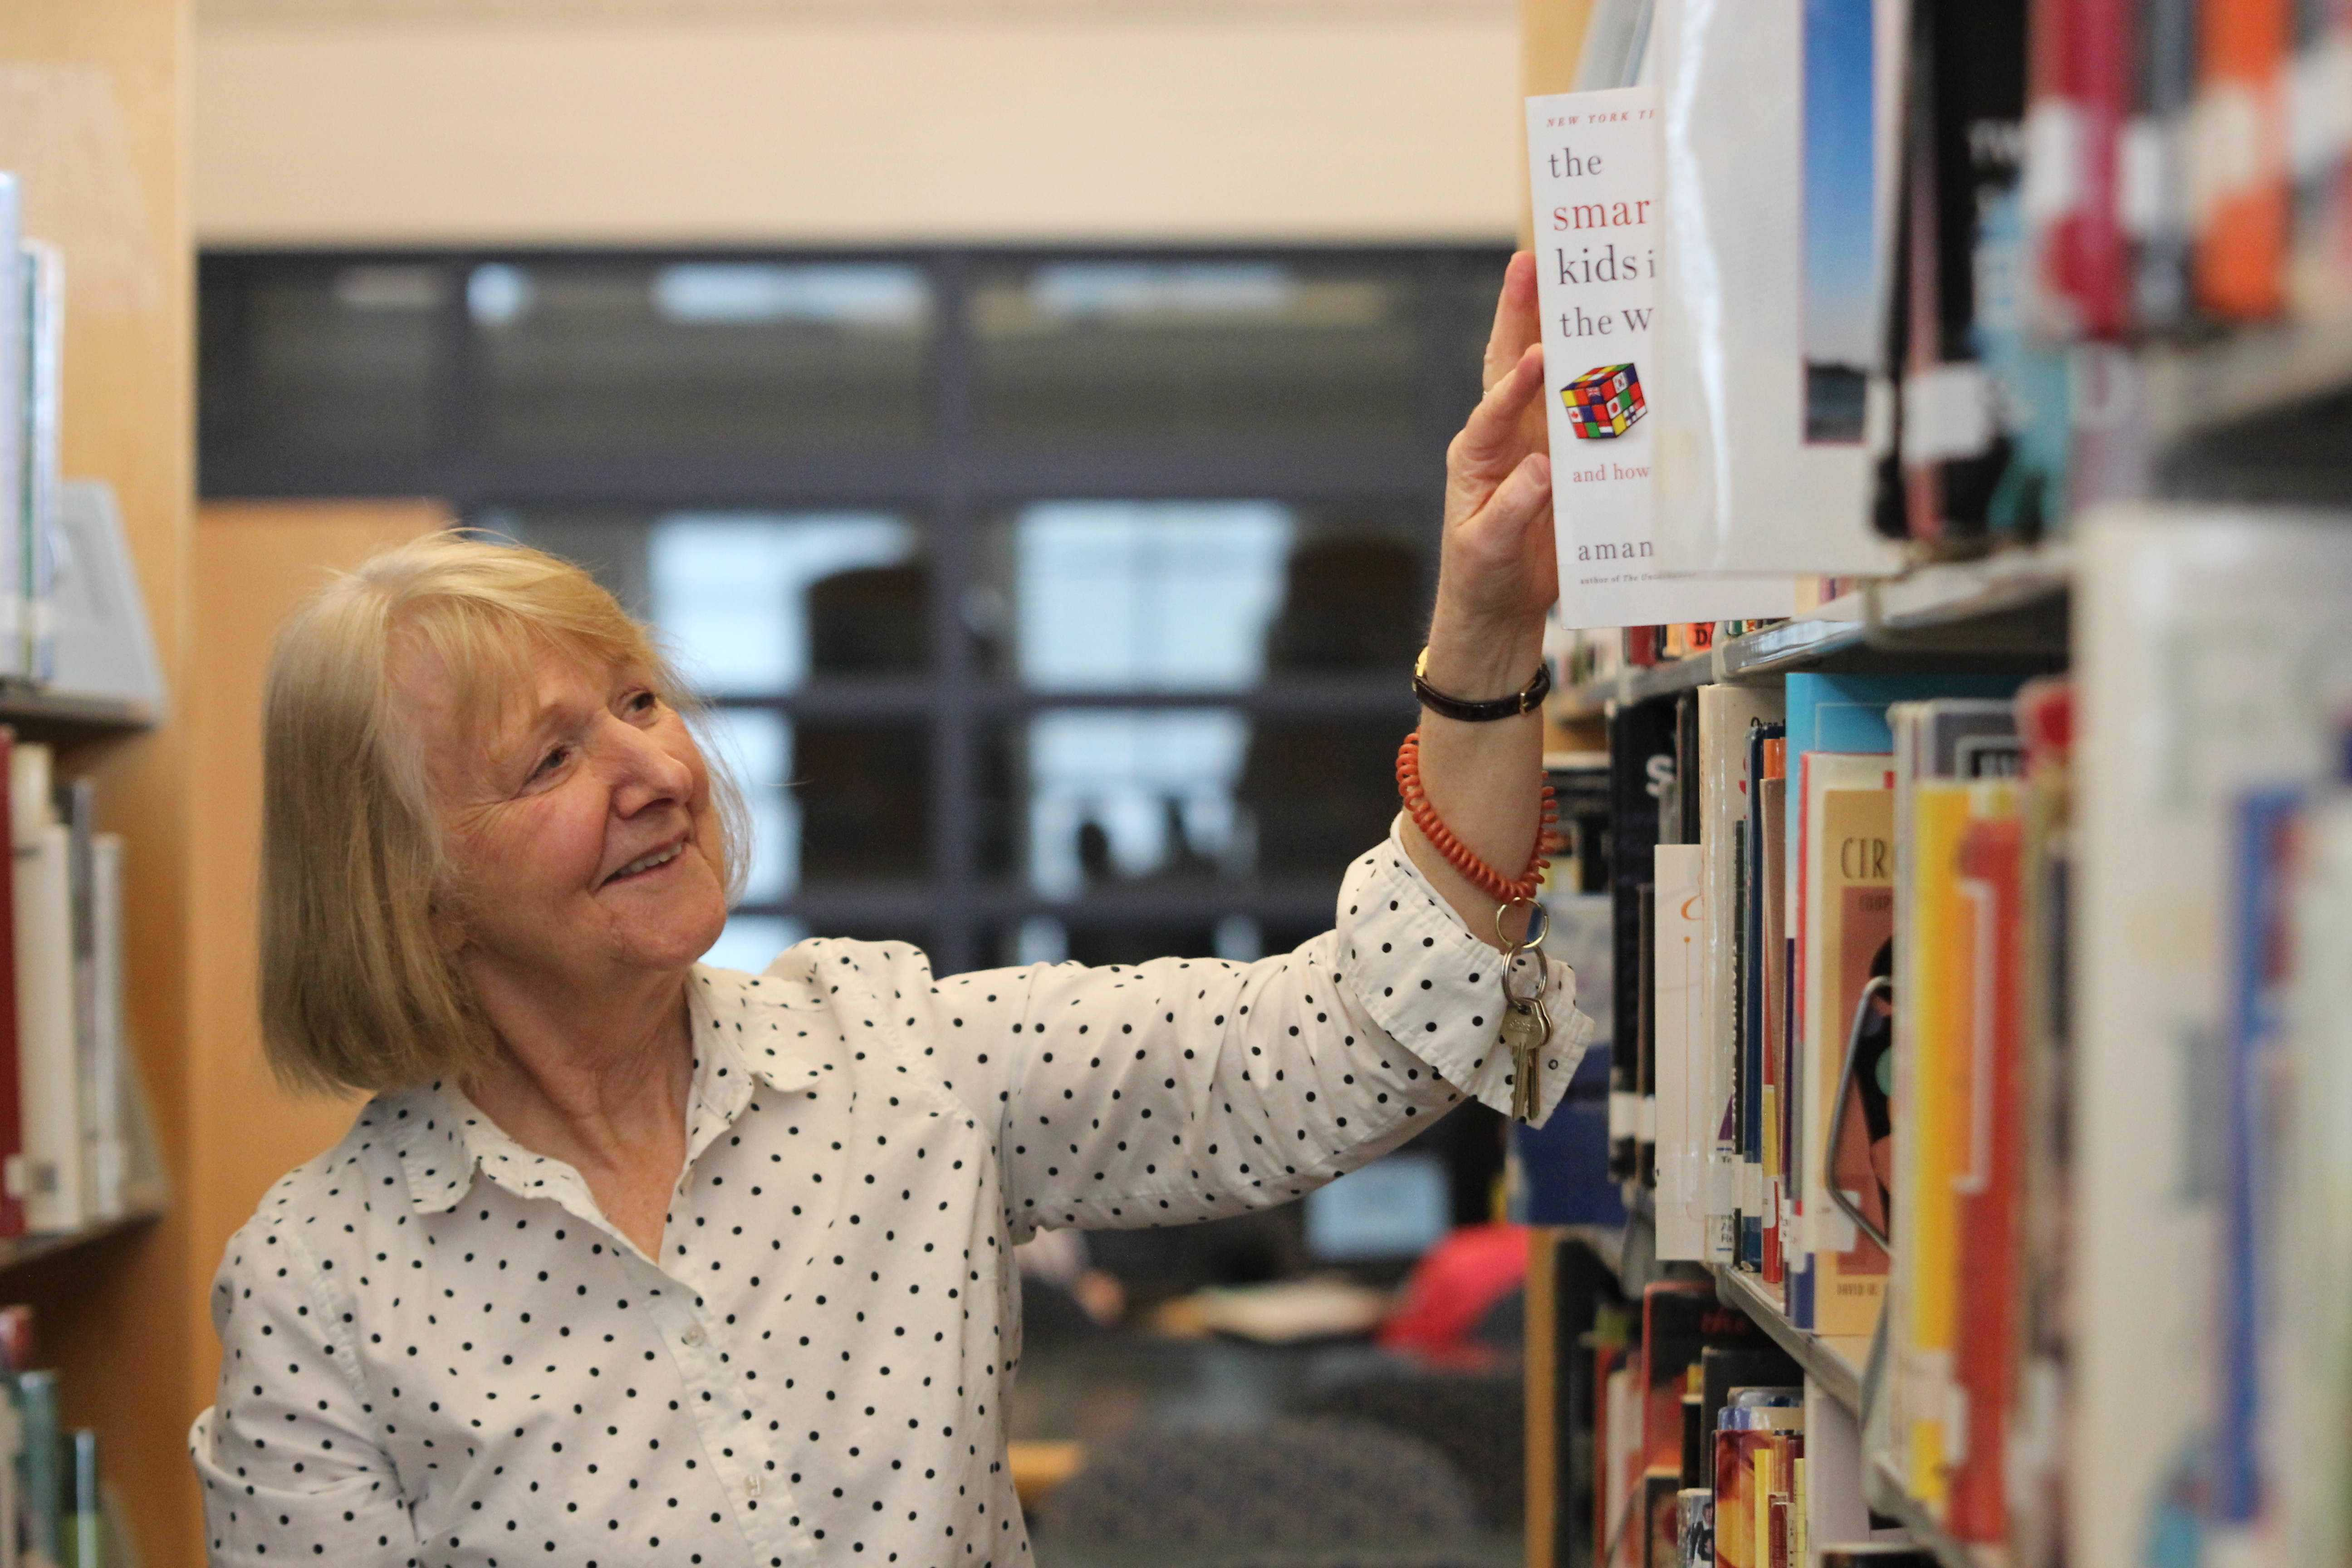 """LOOKING FOR ADVENTURE: Library media specialist Gloria Klinger places a book on the shelf. After 30 years of working in the district, Klinger's retiring. """"Even though I love my job, it's time to take off and do some travelling,"""